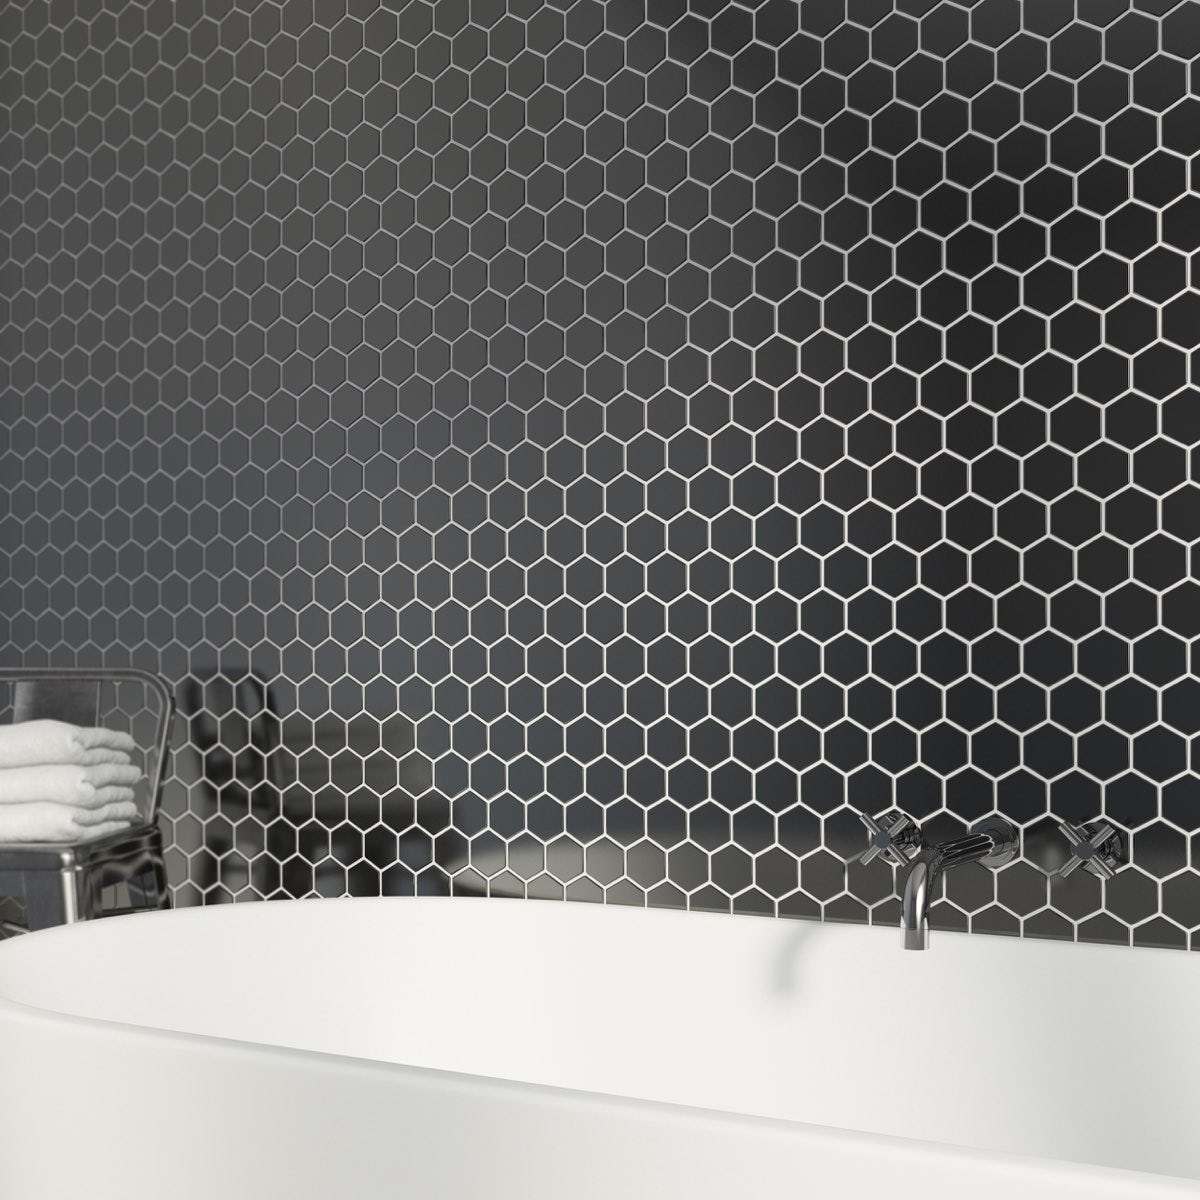 British Ceramic Tile Mosaic Hex Black Gloss Tile 300mm X